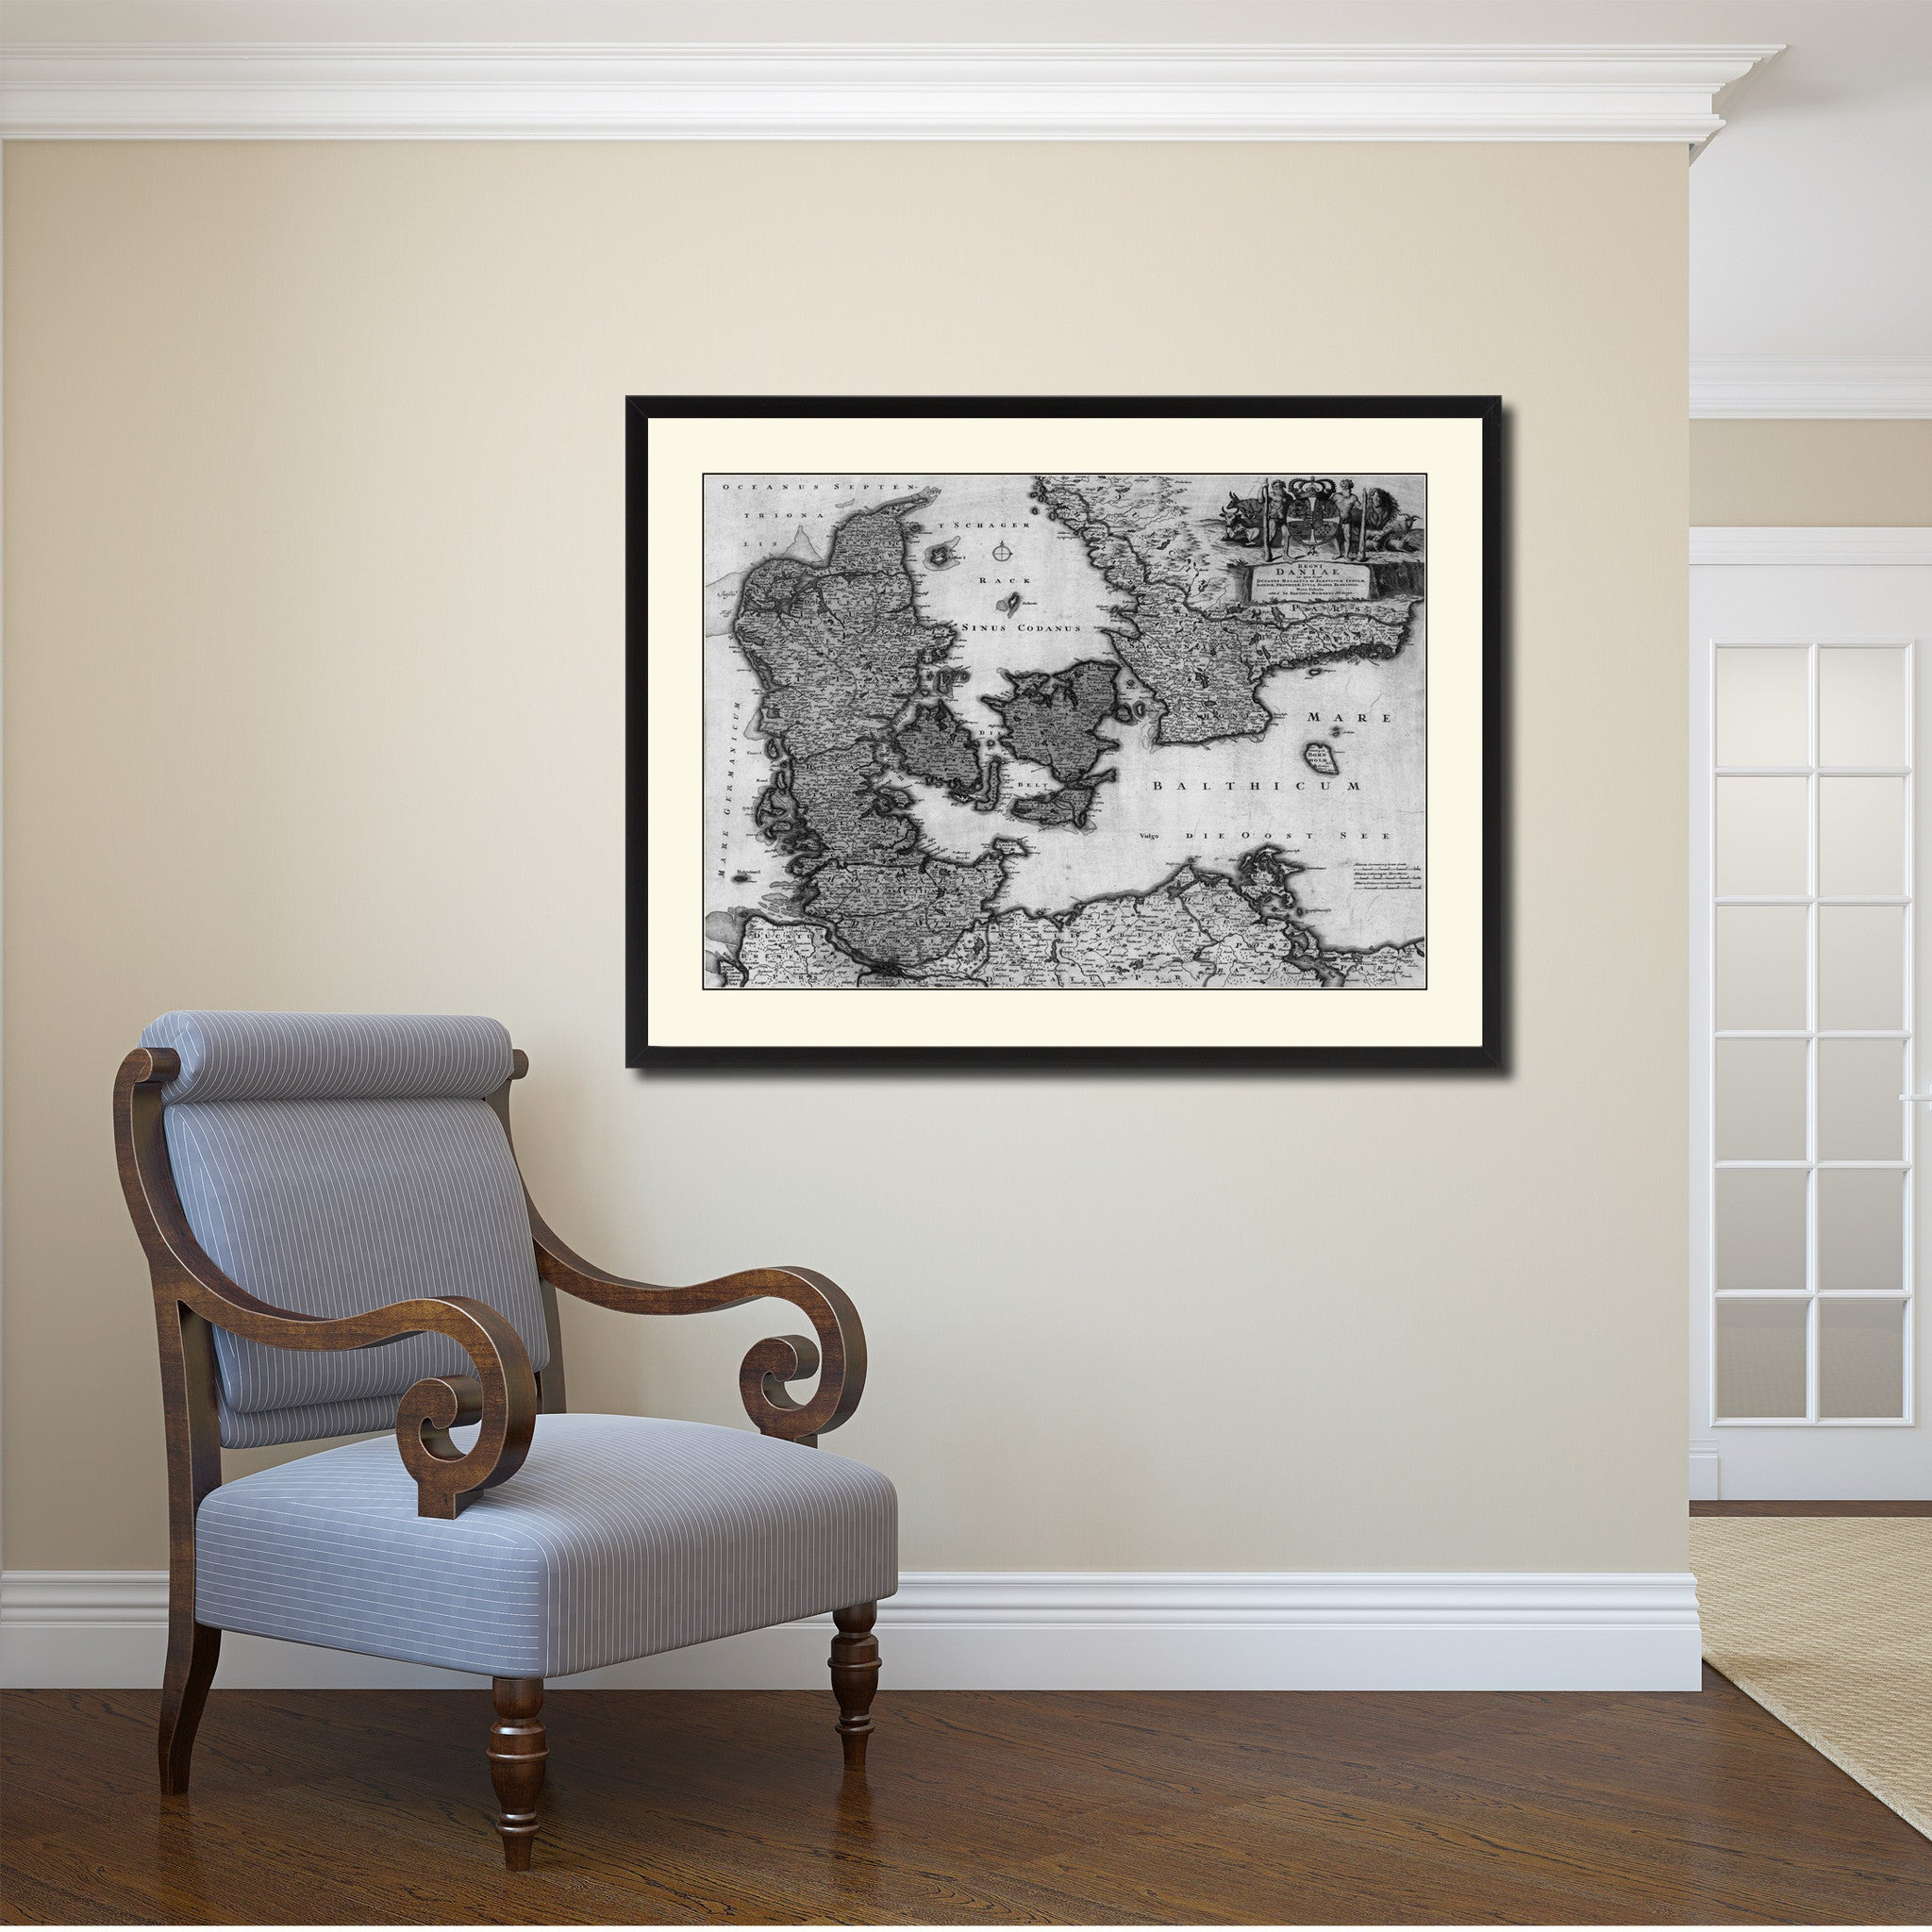 Denmark Centuries Vintage B&W Map Canvas Print, Picture Frame Home Decor Wall Art Gift Ideas